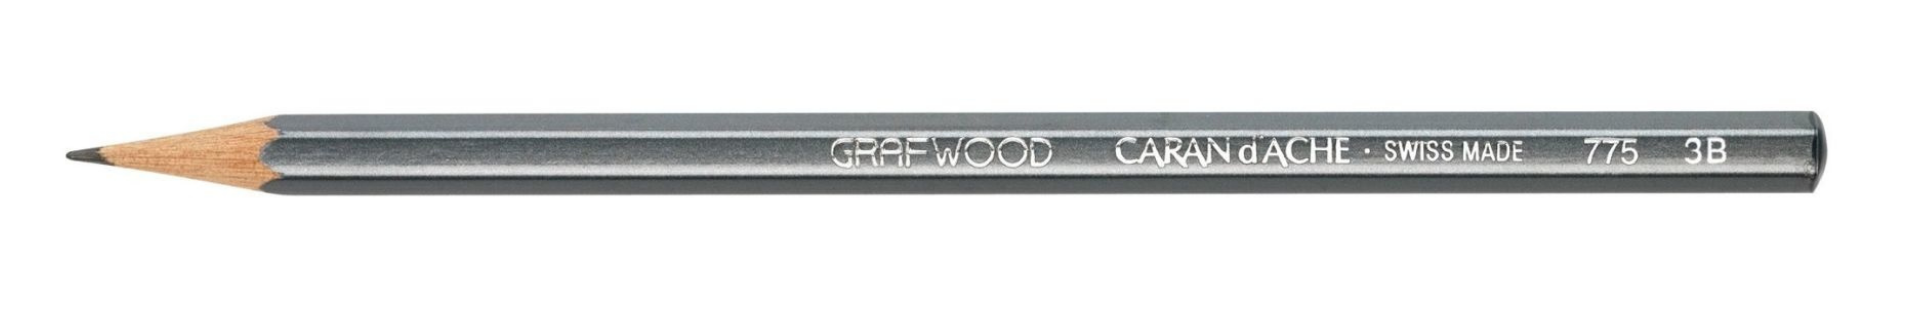 Caran D'Ache Grafwood